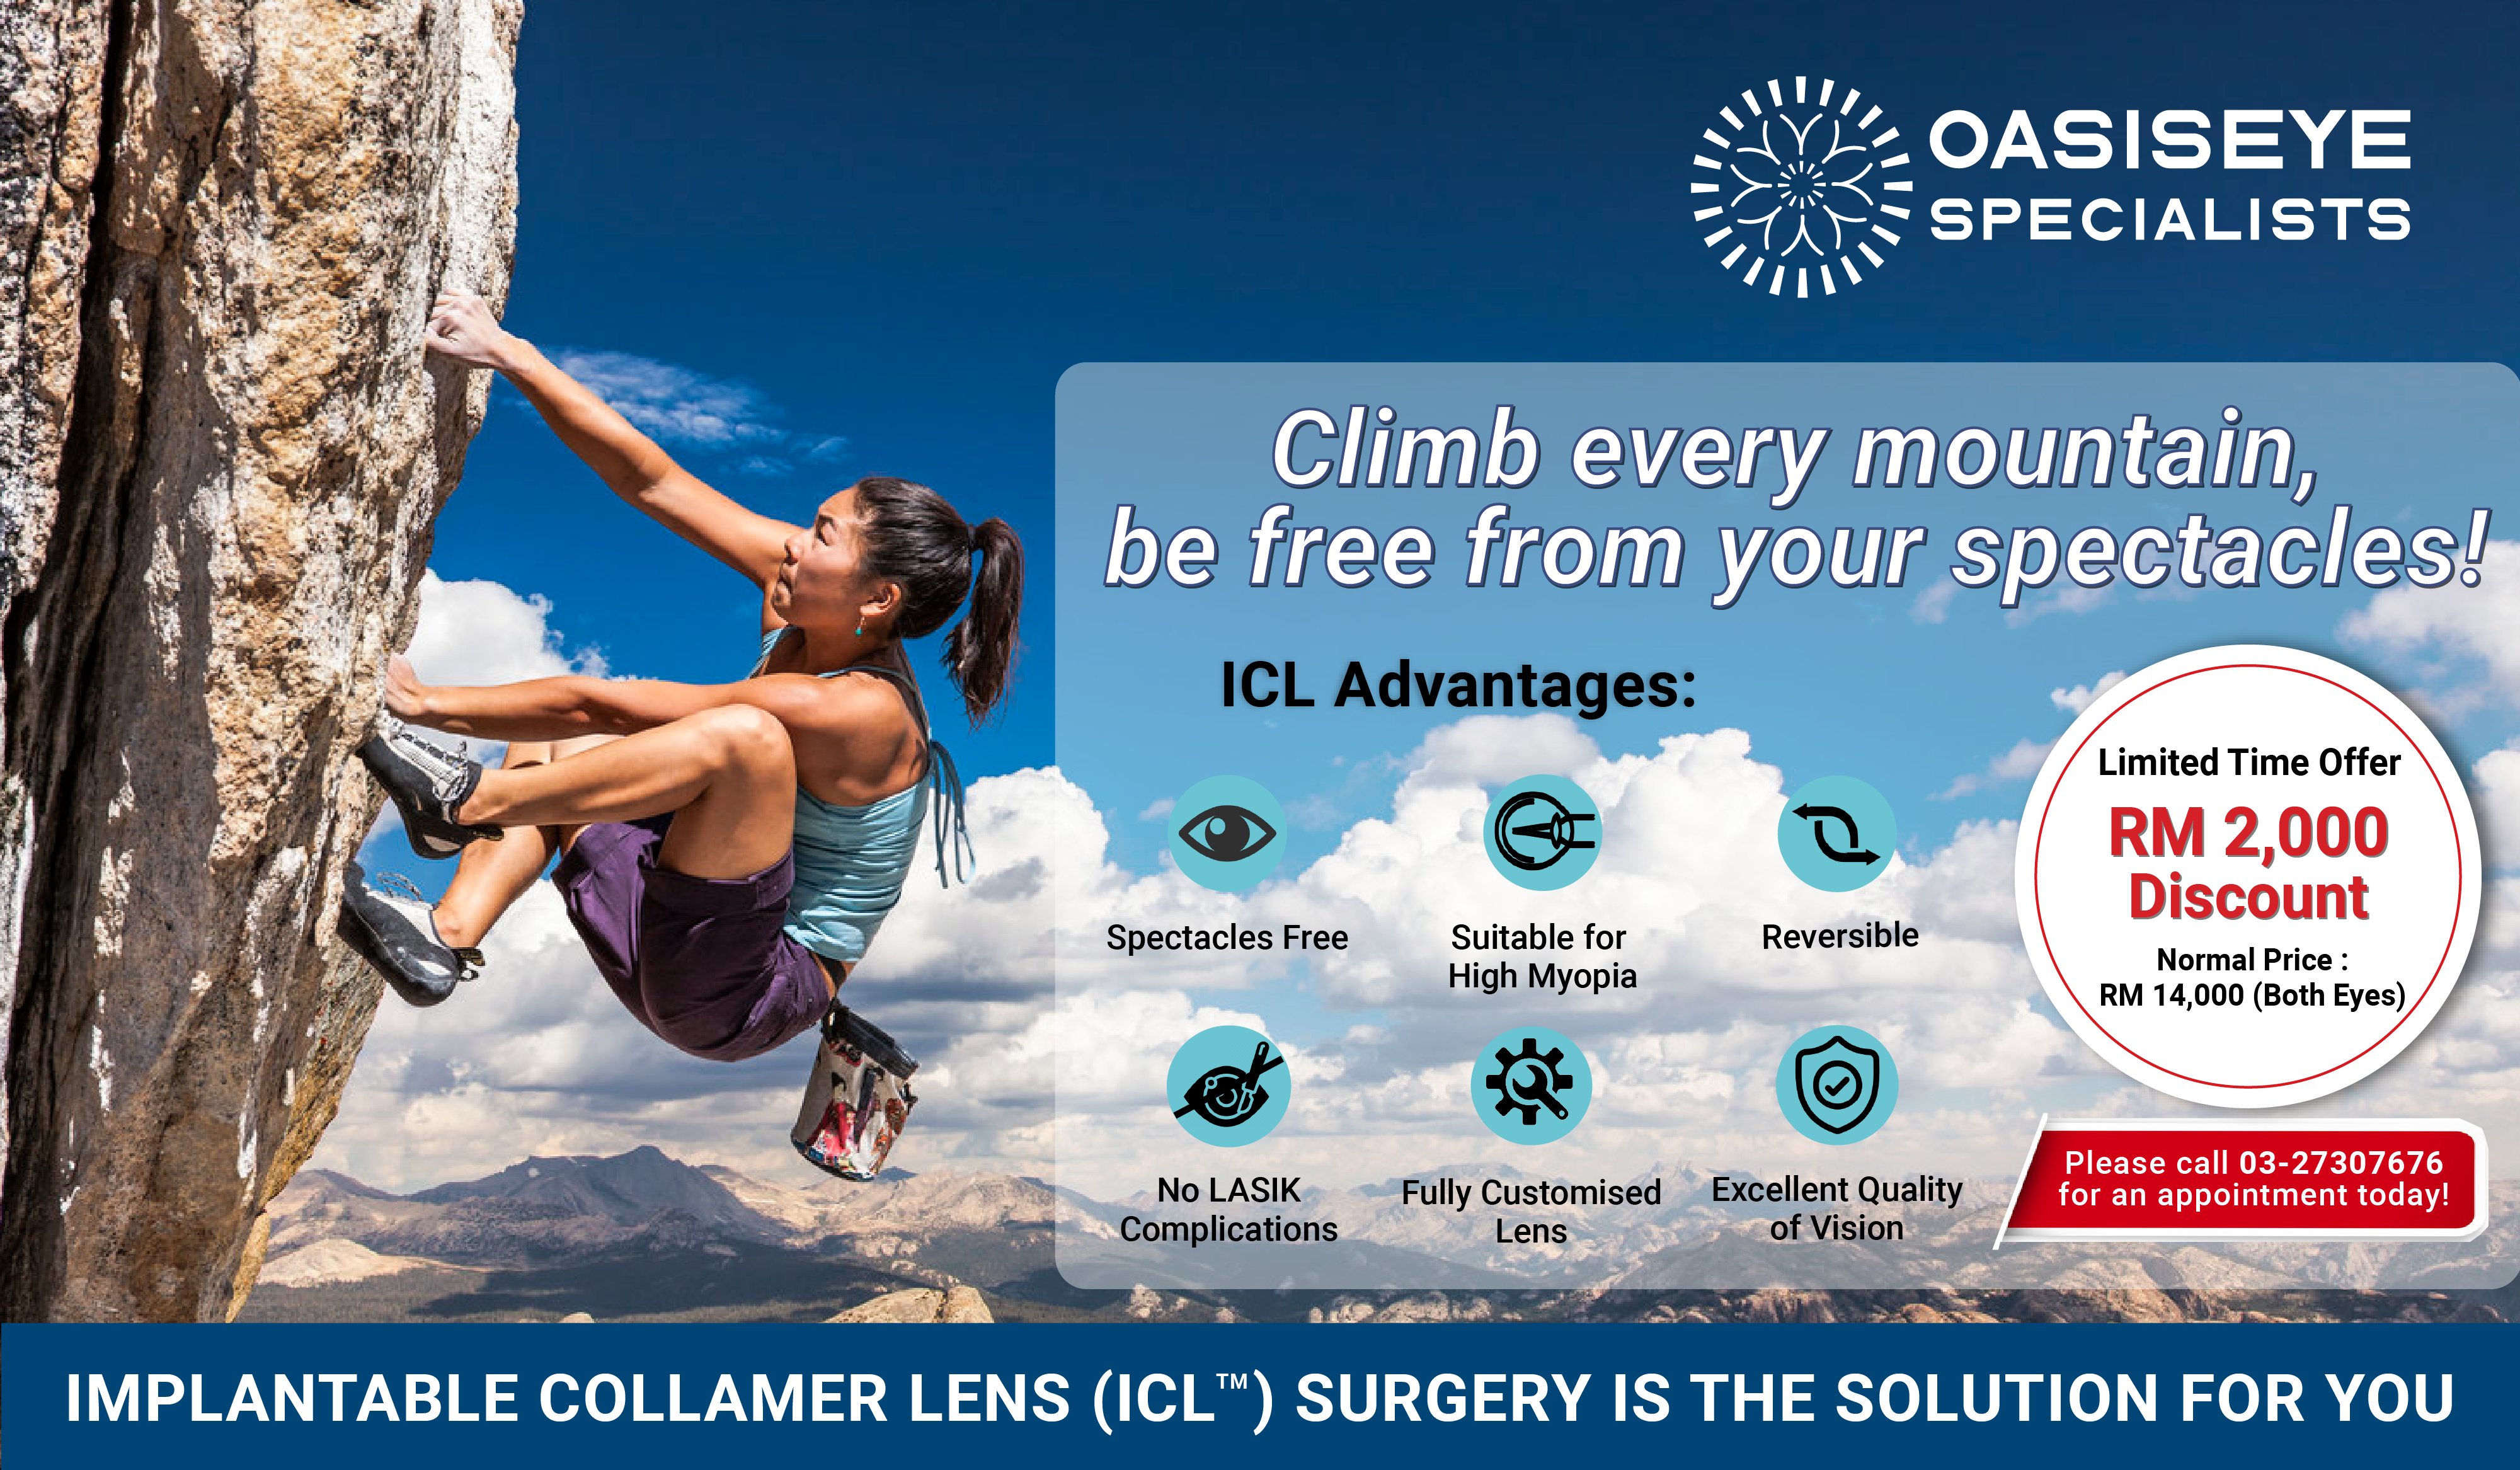 Implantable Collamer Lens (ICL) Surgery - Patient Testimonial